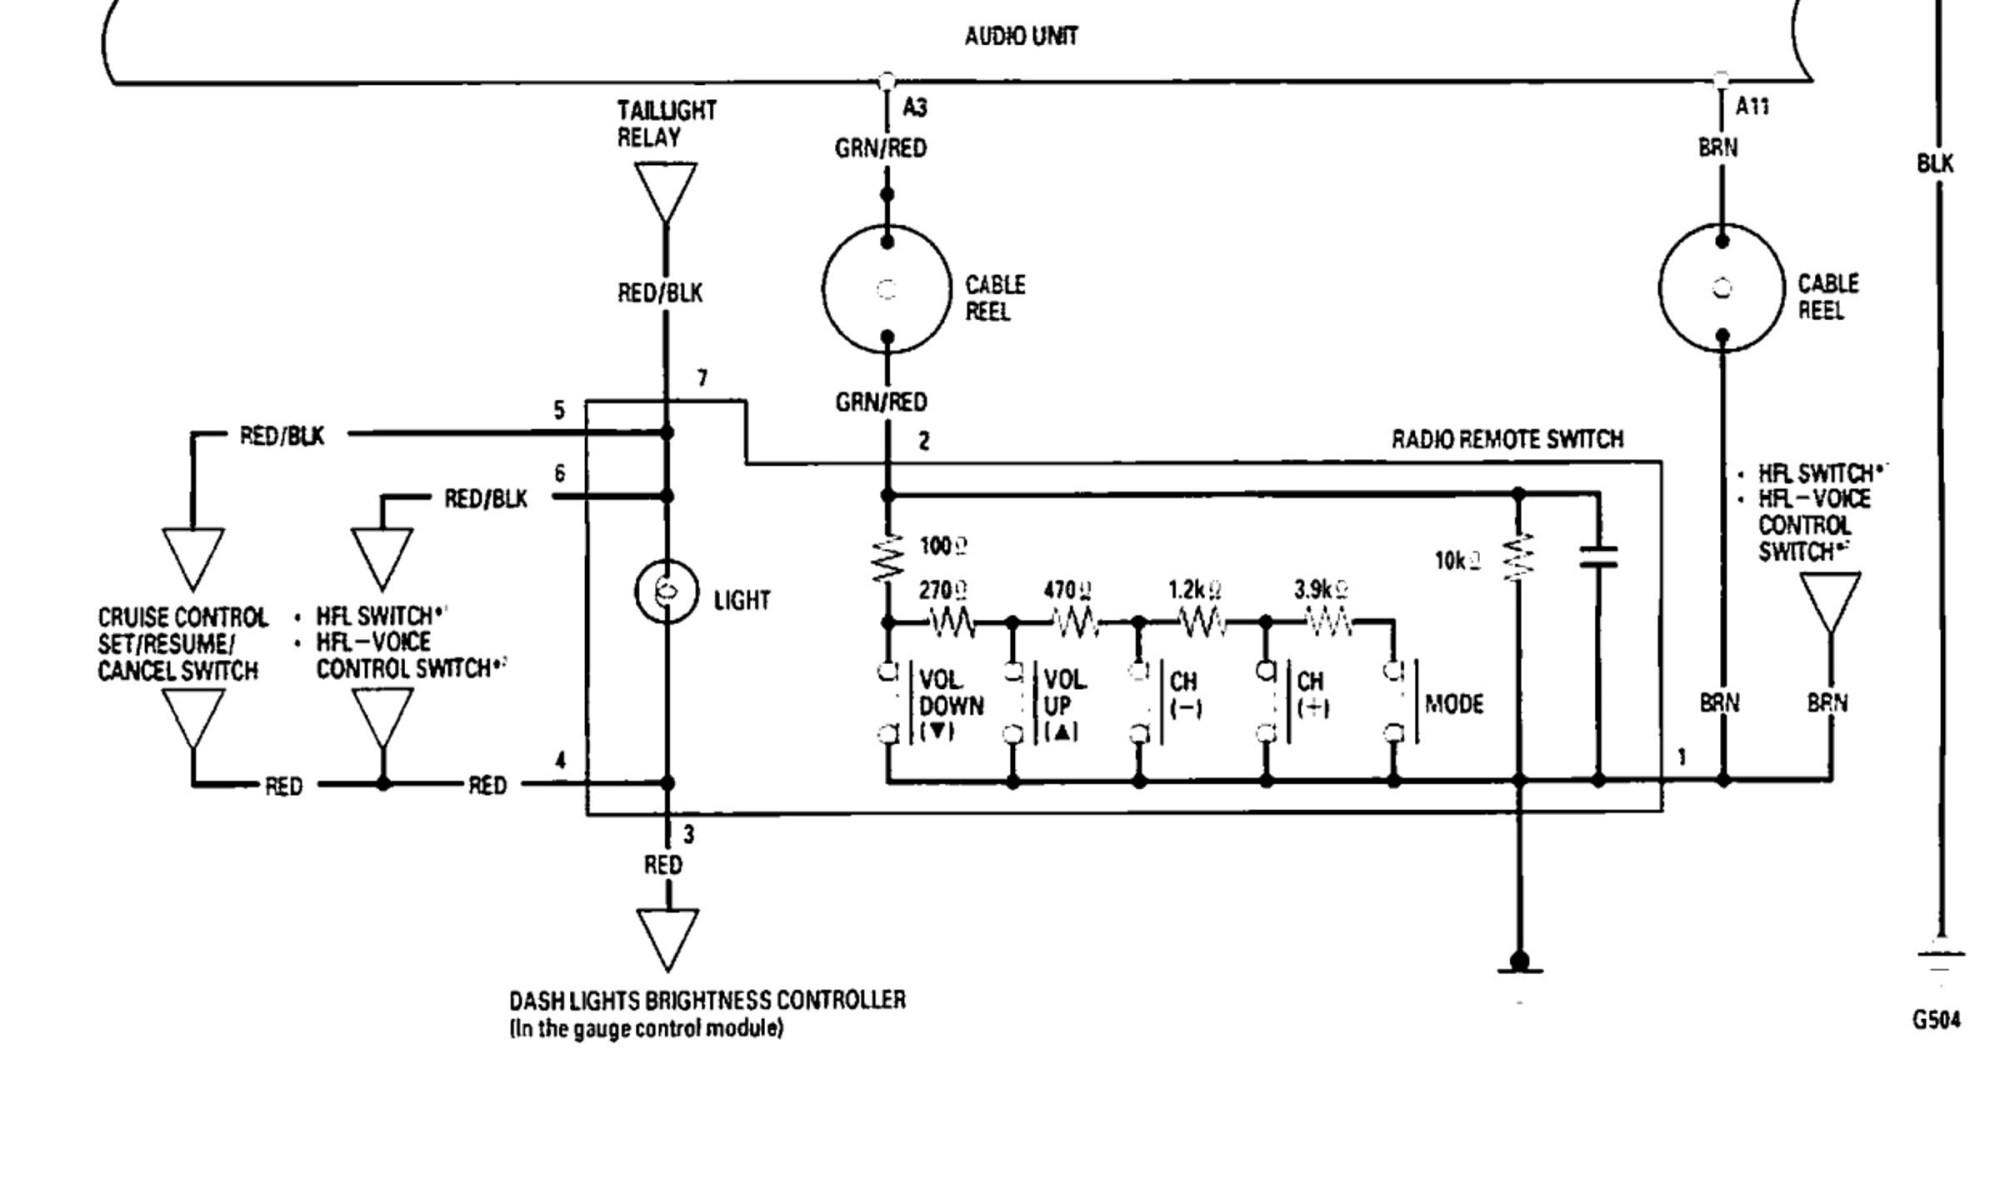 hight resolution of power steering schematic diagram unique steering wheel radio controls wiring diagram diagram of power steering schematic